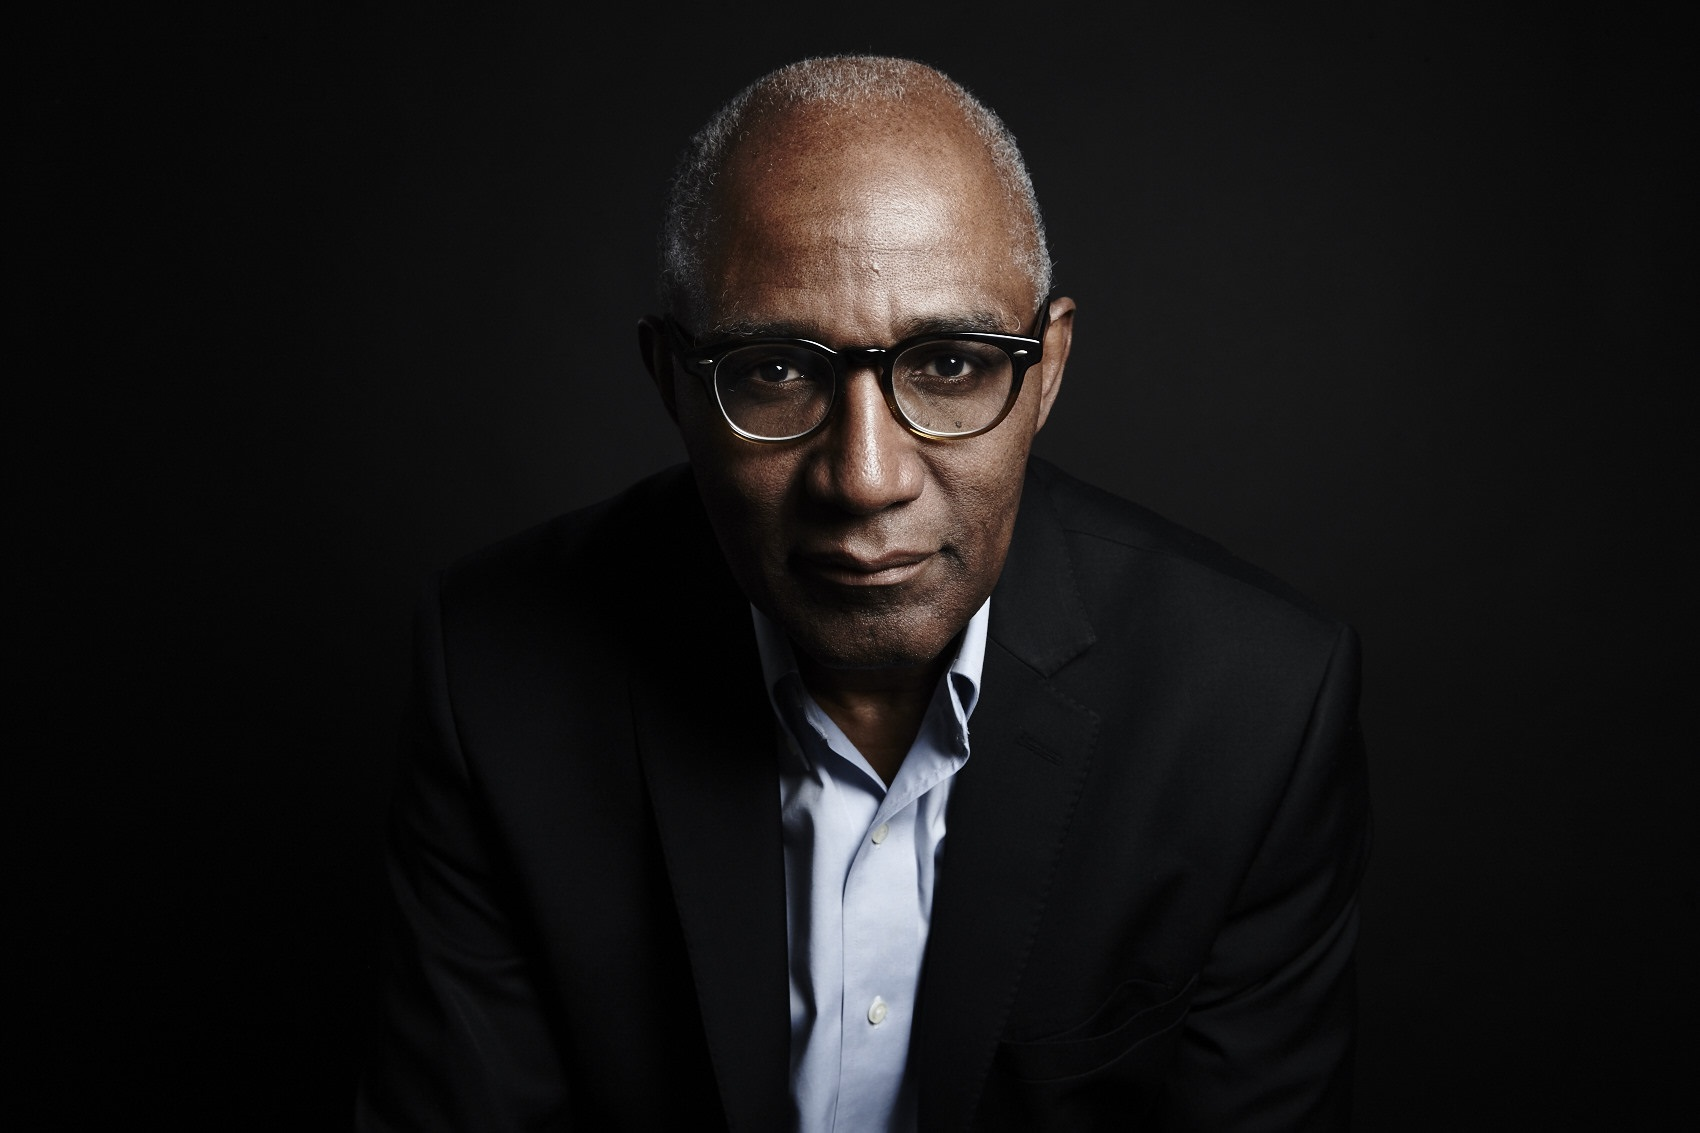 Huffington Post – Trevor Phillips Calls Multiculturalism 'A Racket' Ahead Of Channel 4 Race Documentary